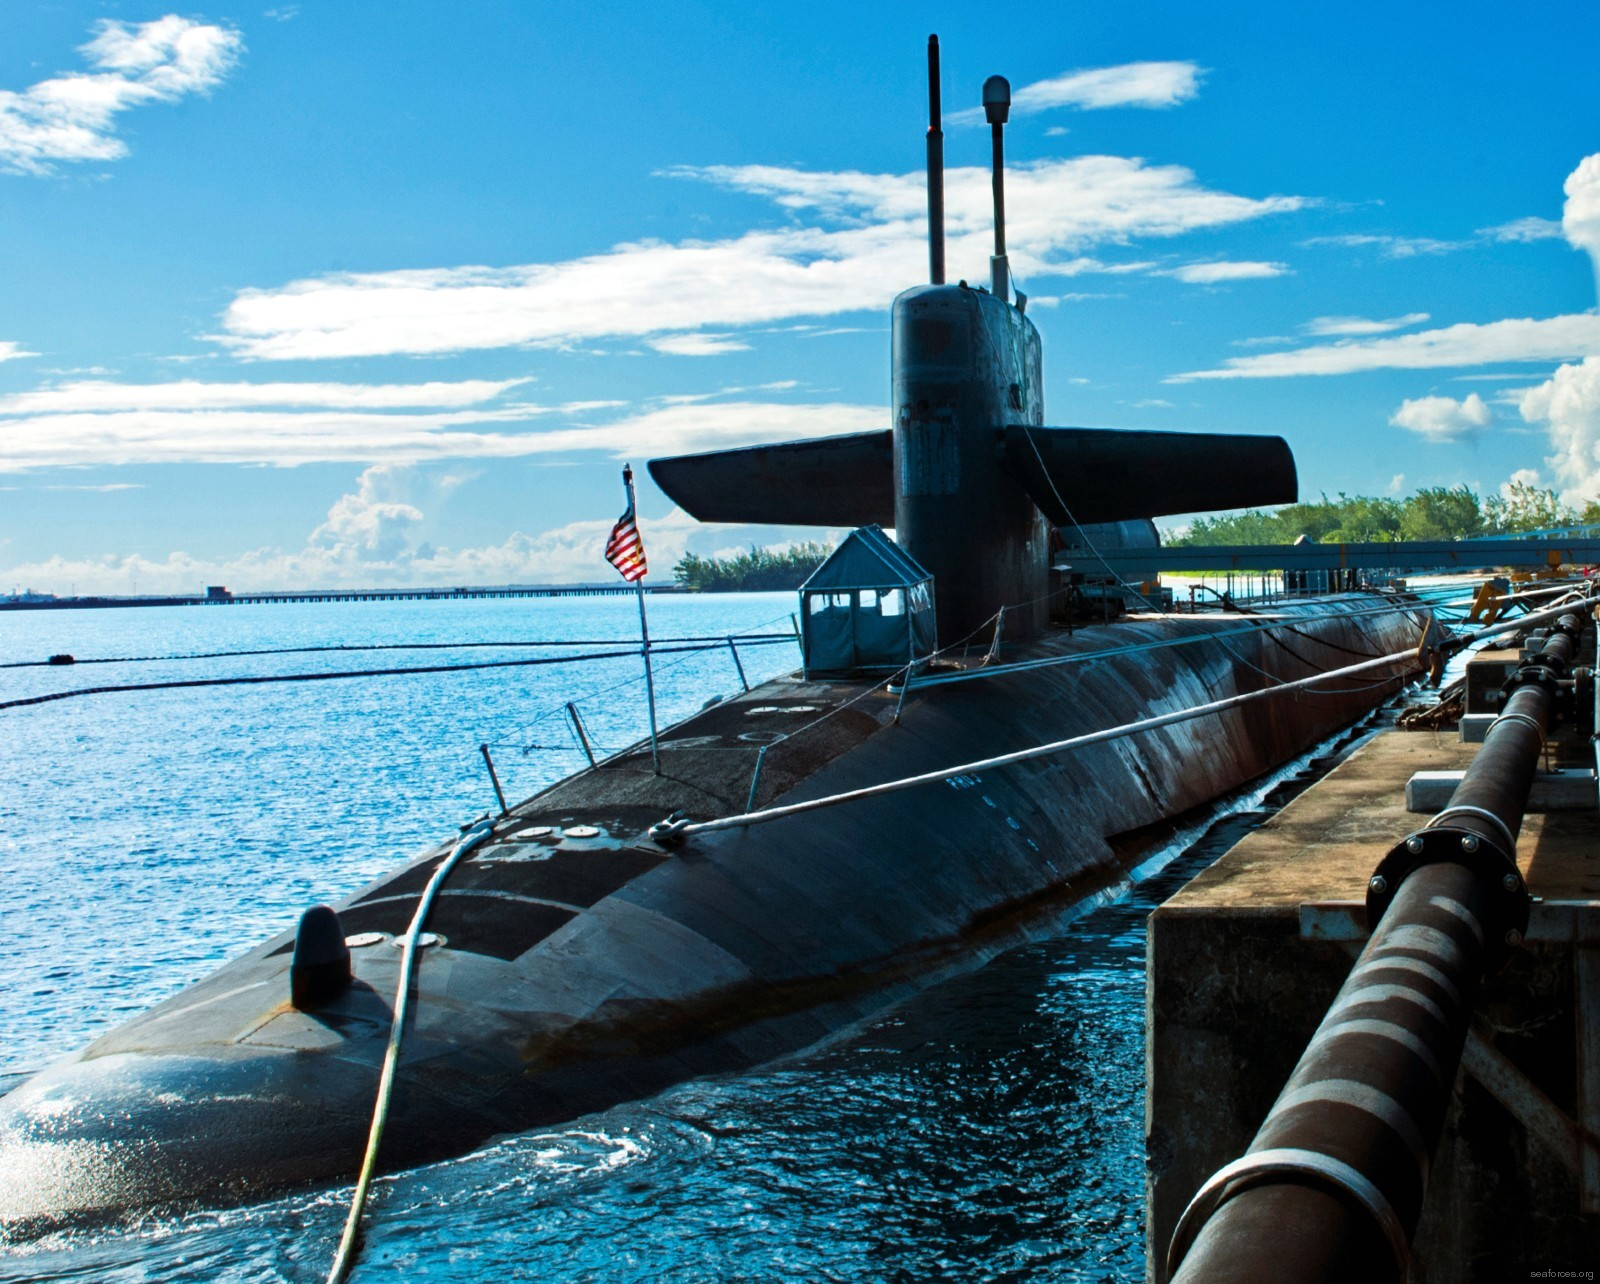 A US submarine at the Diego Garcia base